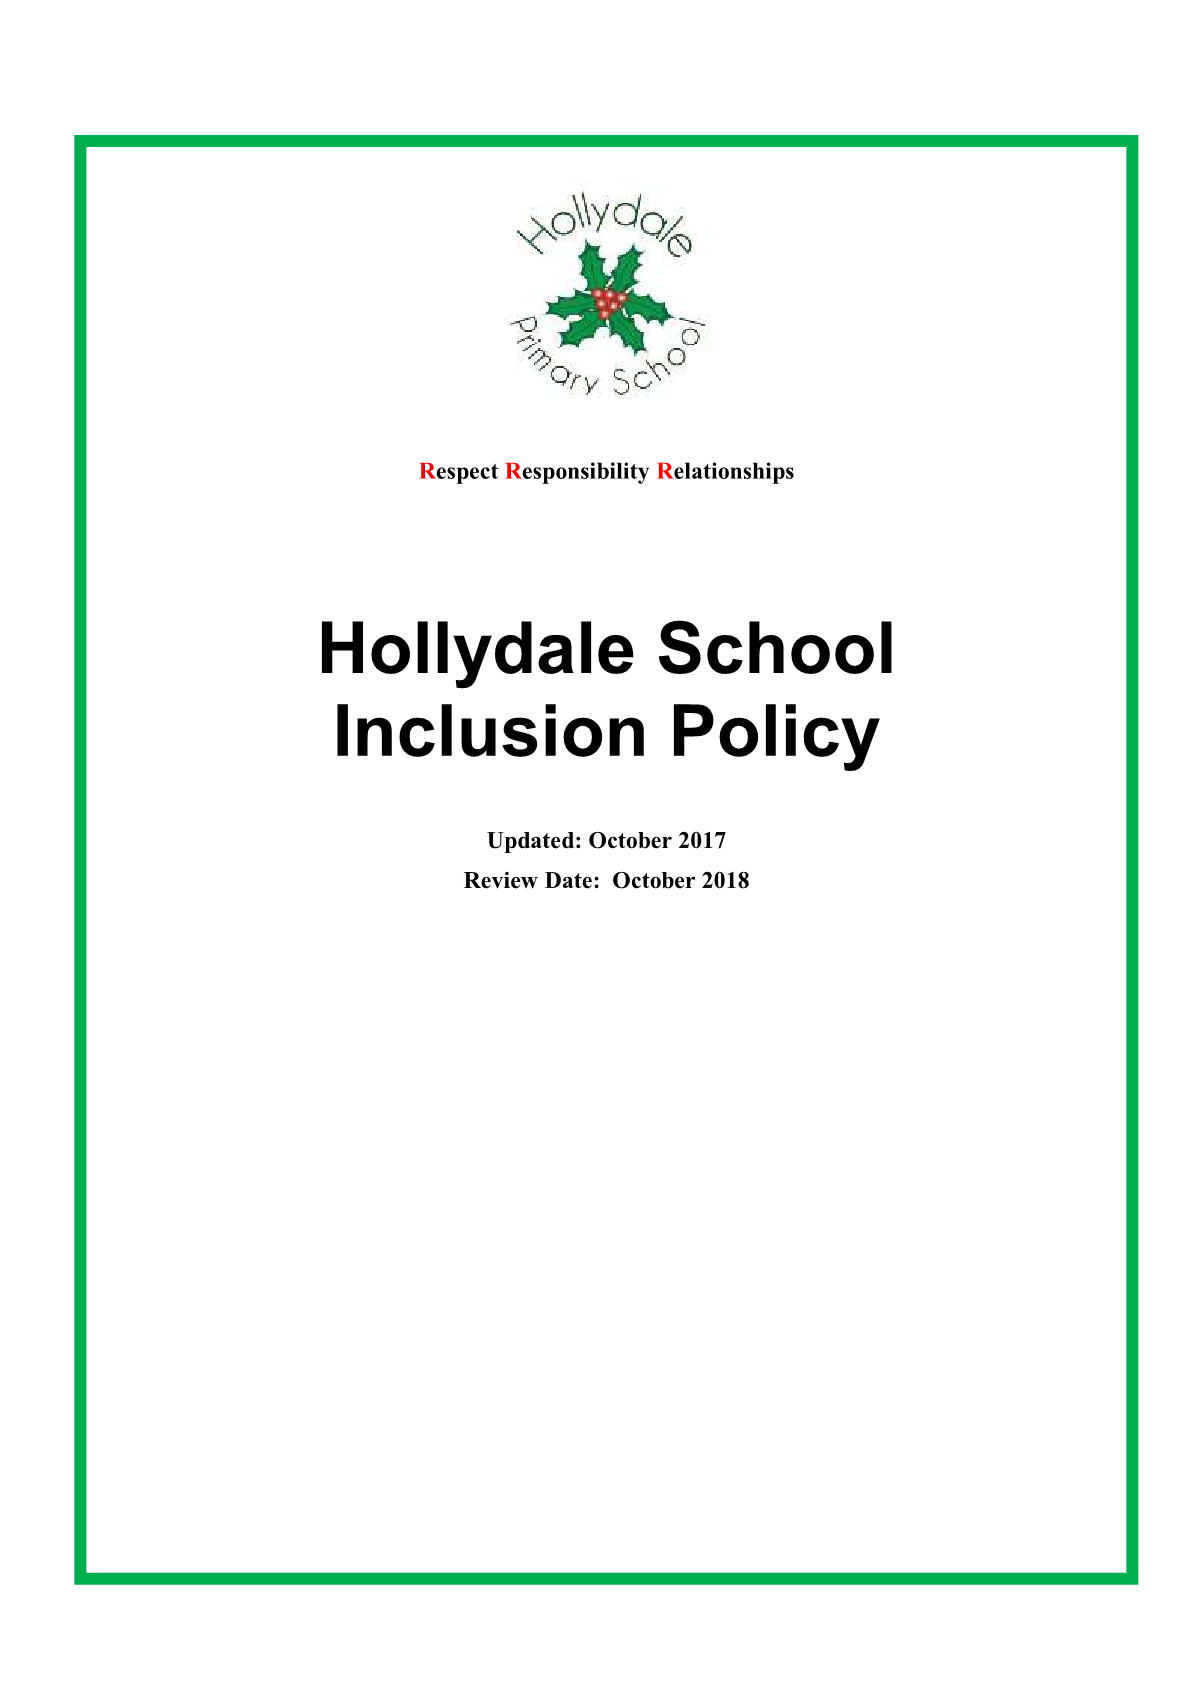 Inclusion Policy